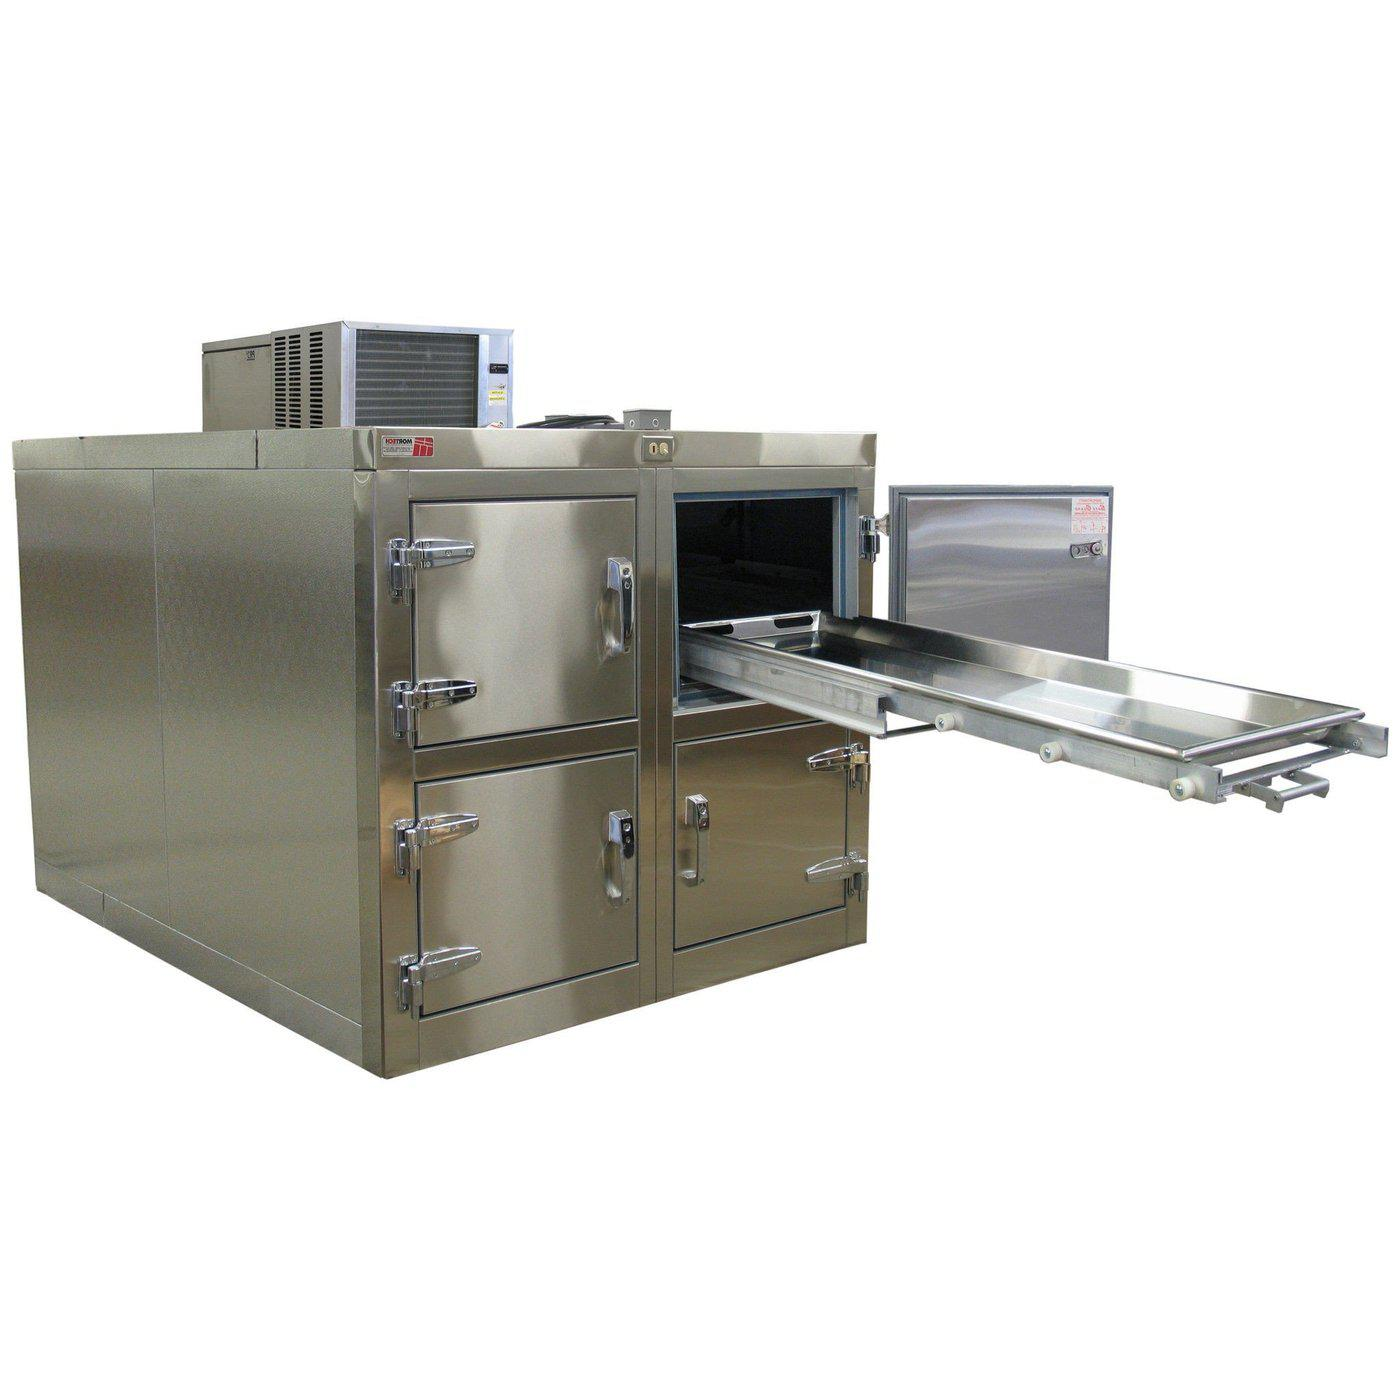 Four Body Refrigerator-Refrigeration-Mortech Manufacturing Company Inc. Quality Stainless Steel Autopsy, Morgue, Funeral Home, Necropsy, Veterinary / Anatomy, Dissection Equipment and Accessories